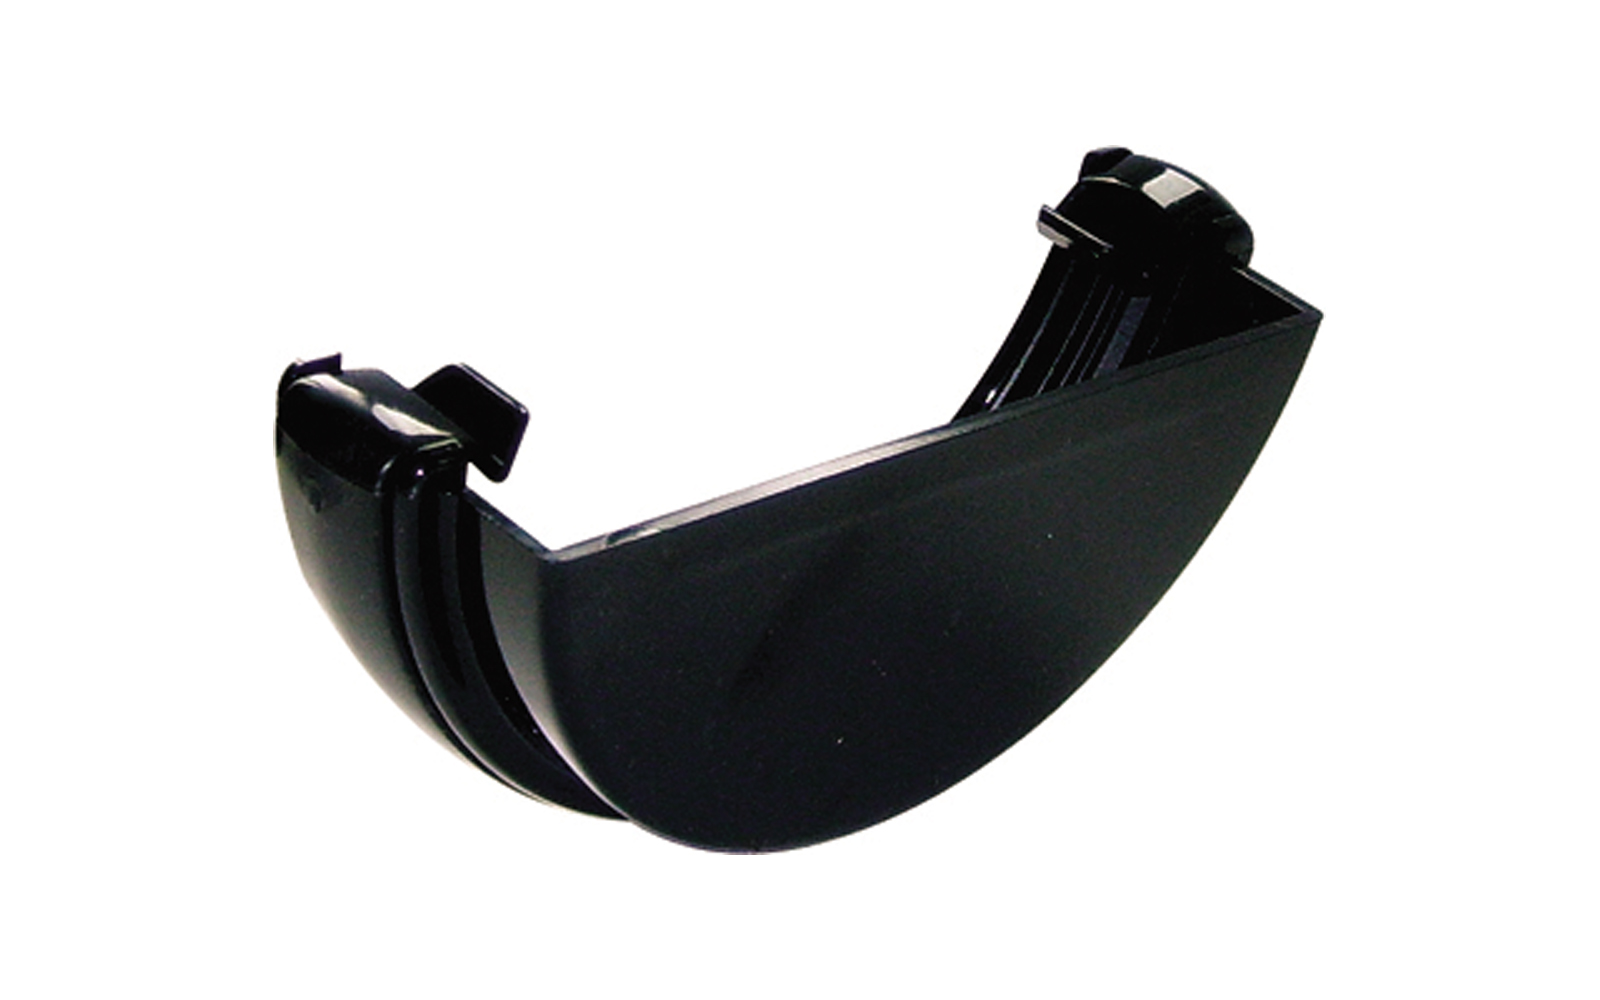 FLOPLAST RE1BL HALF ROUND GUTTER - EXTERNAL STOPEND - BLACK